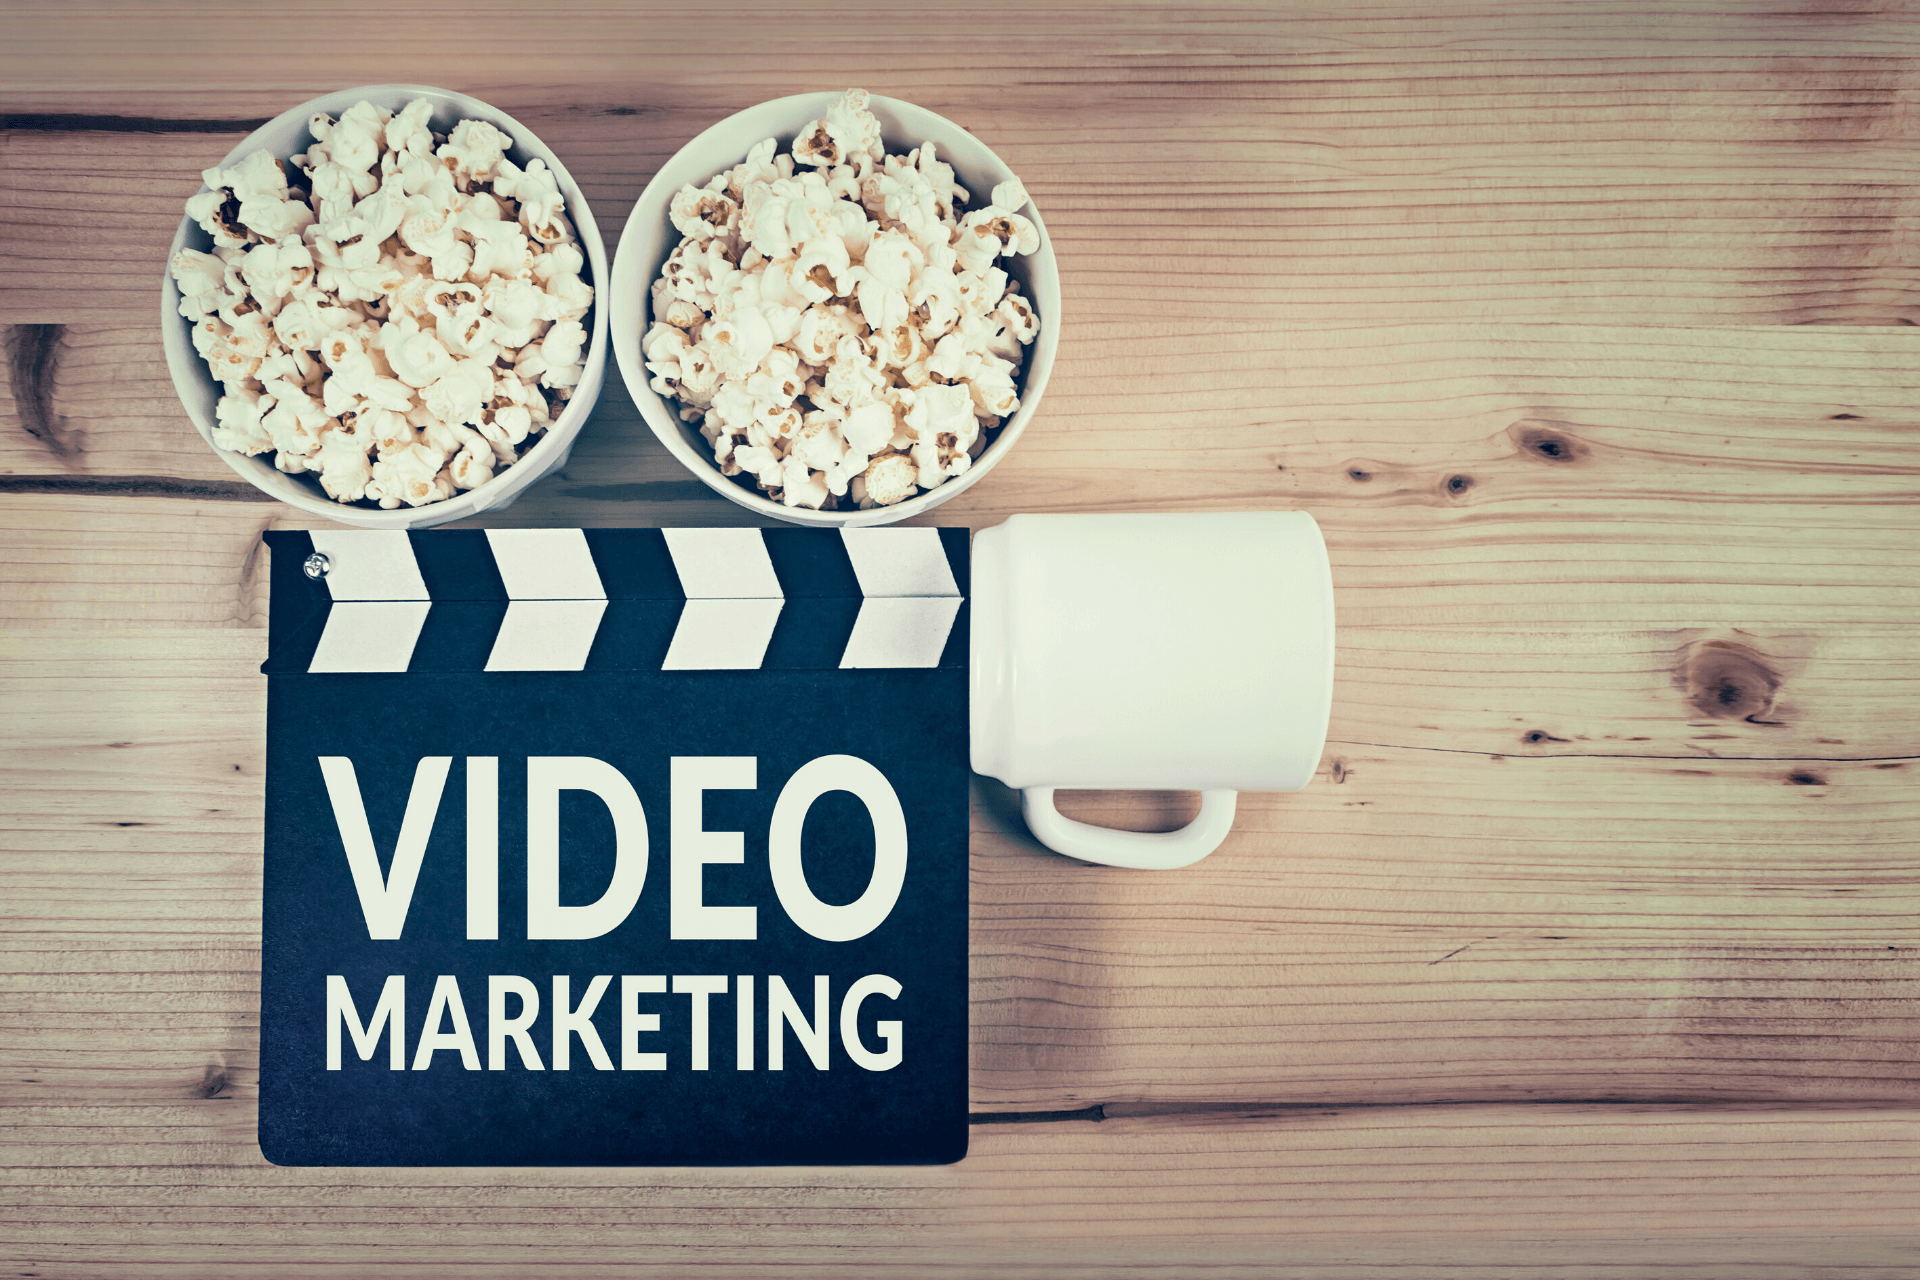 Why Video Should Be Part of Your Marketing Strategy